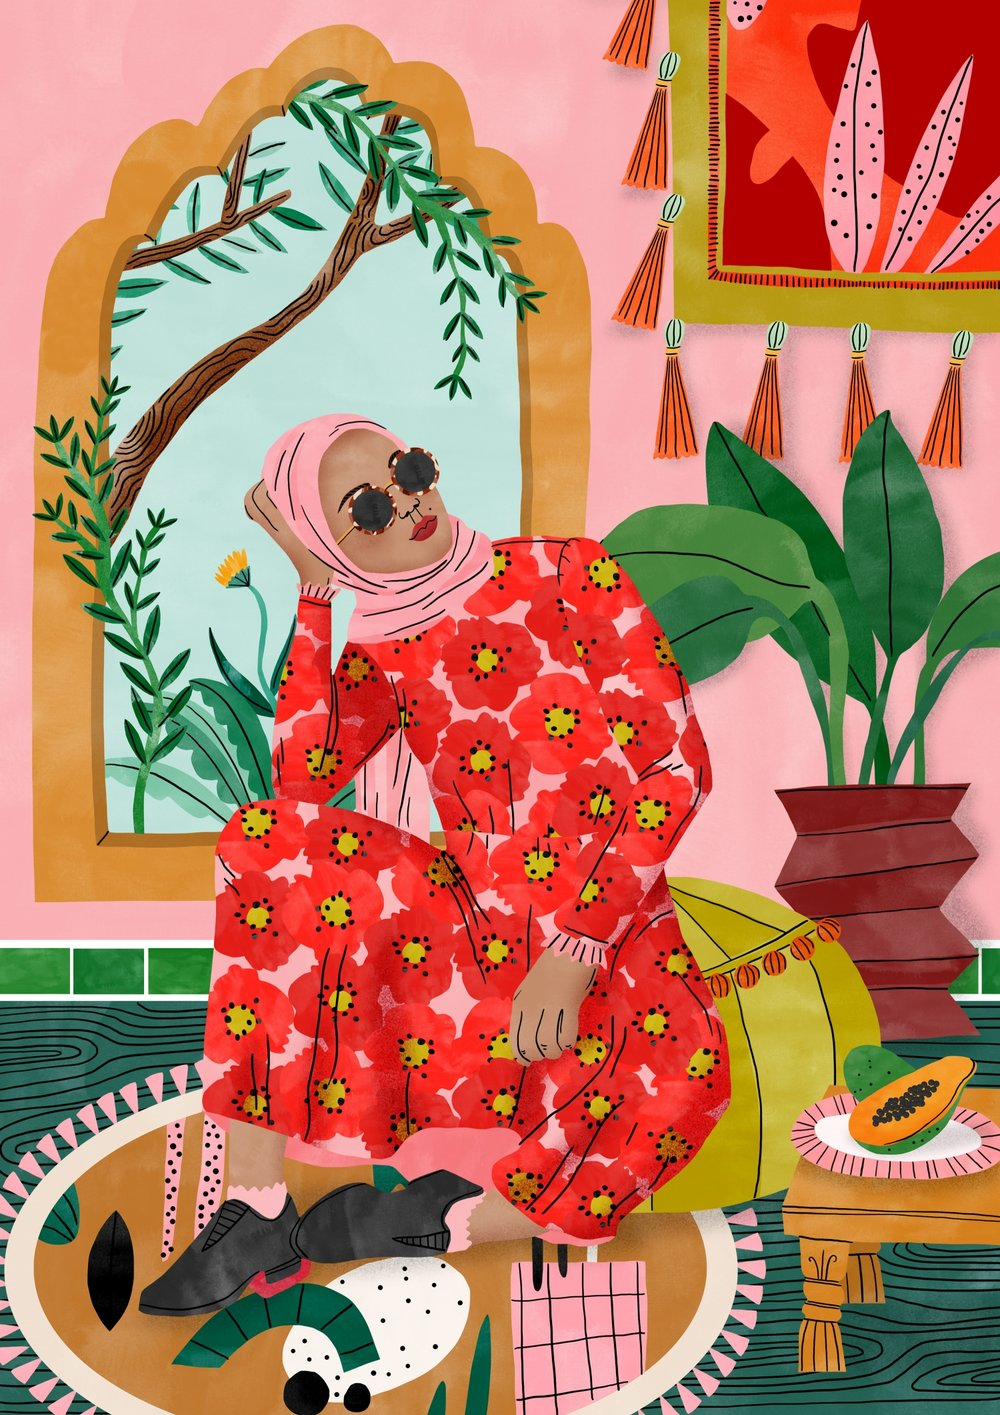 Bodil-Jane-Folio-Illustration-Moroccan-Dreams-Girl-Pattern-Interior-1500x2122.jpg